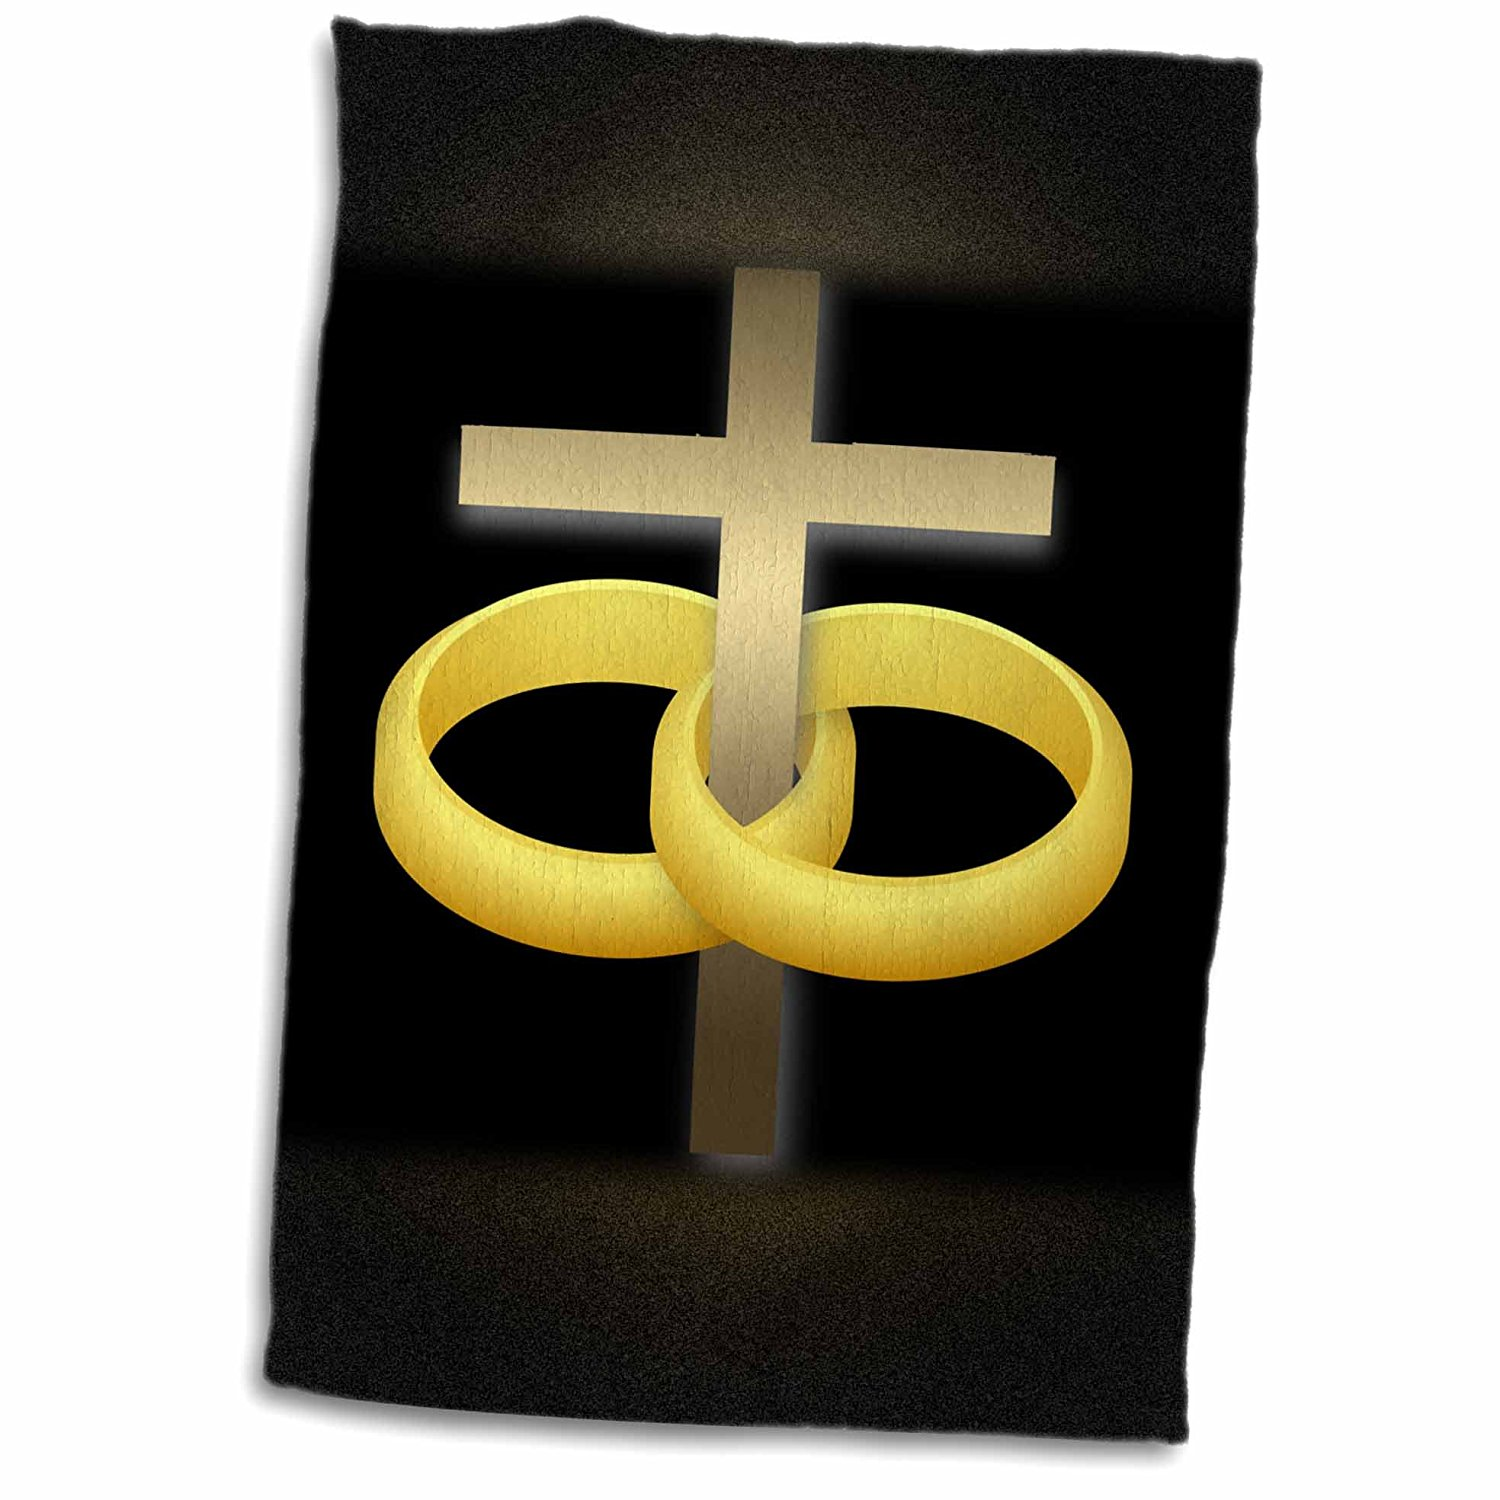 3drose 777images Designs Christian Marriage Or Anniversary Cross With Two Gold Wedding Rings Around A: Cross Backround Wedding Bands At Websimilar.org